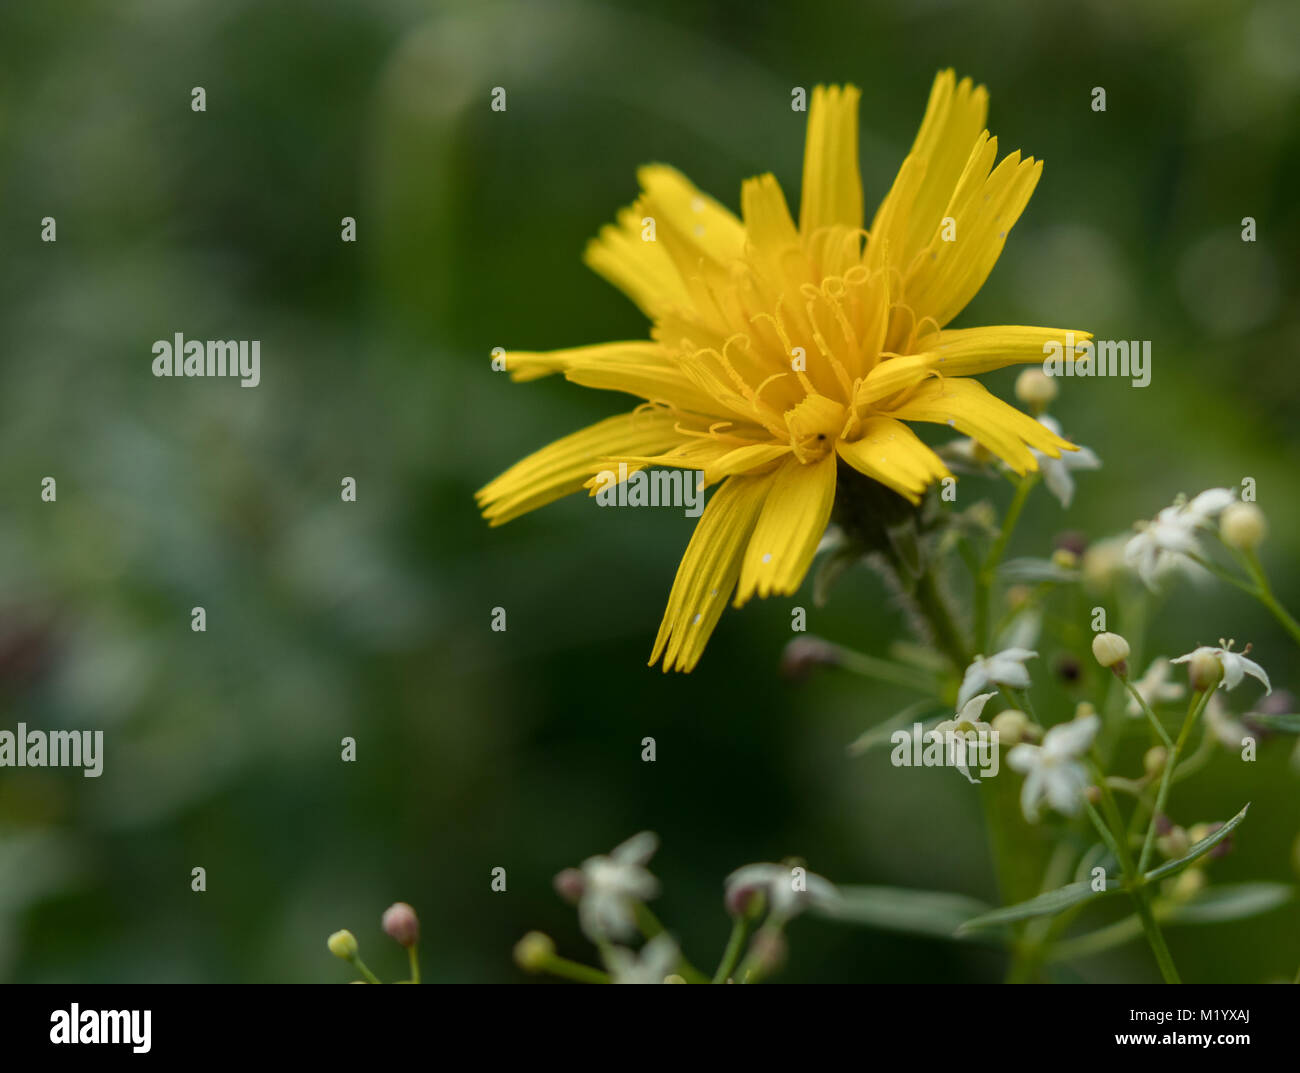 Spotted Hawkweed with small white flowers in background - Stock Image